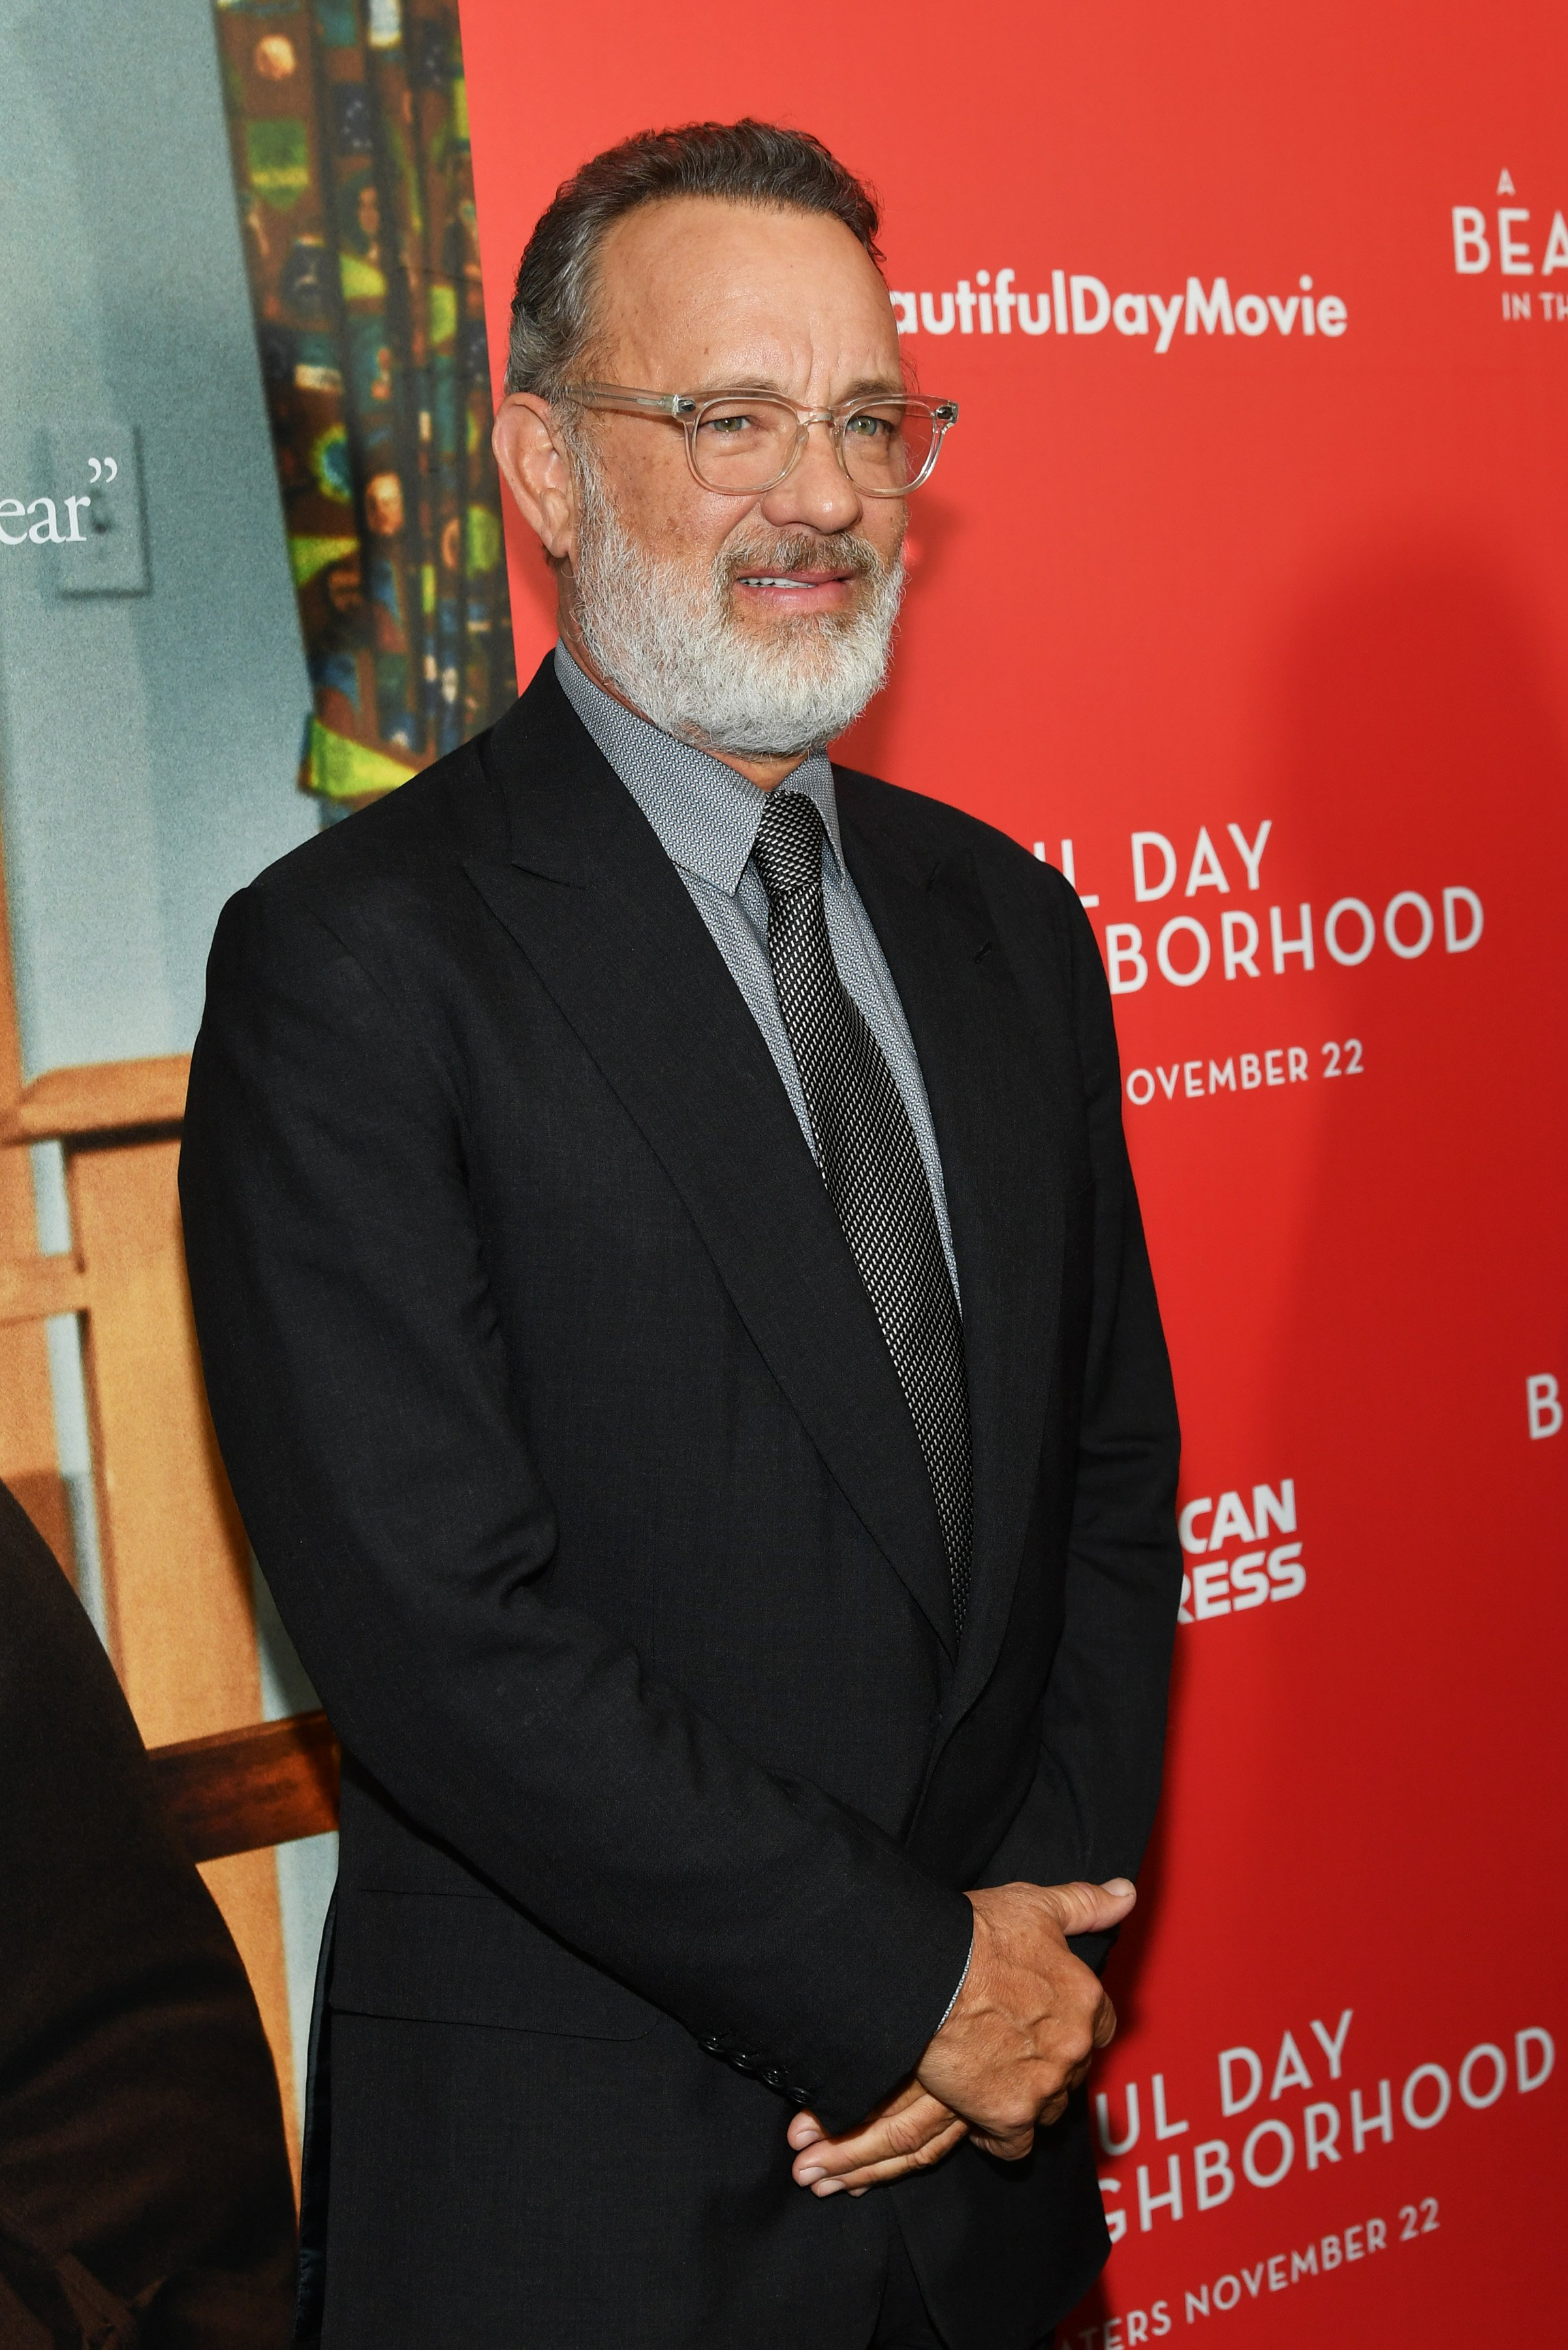 """Tom Hanks attends """"A Beautiful Day In The Neighborhood"""" New York Screening at Henry R. Luce Auditorium at Brookfield Place on November 17, 2019, in New York City. 